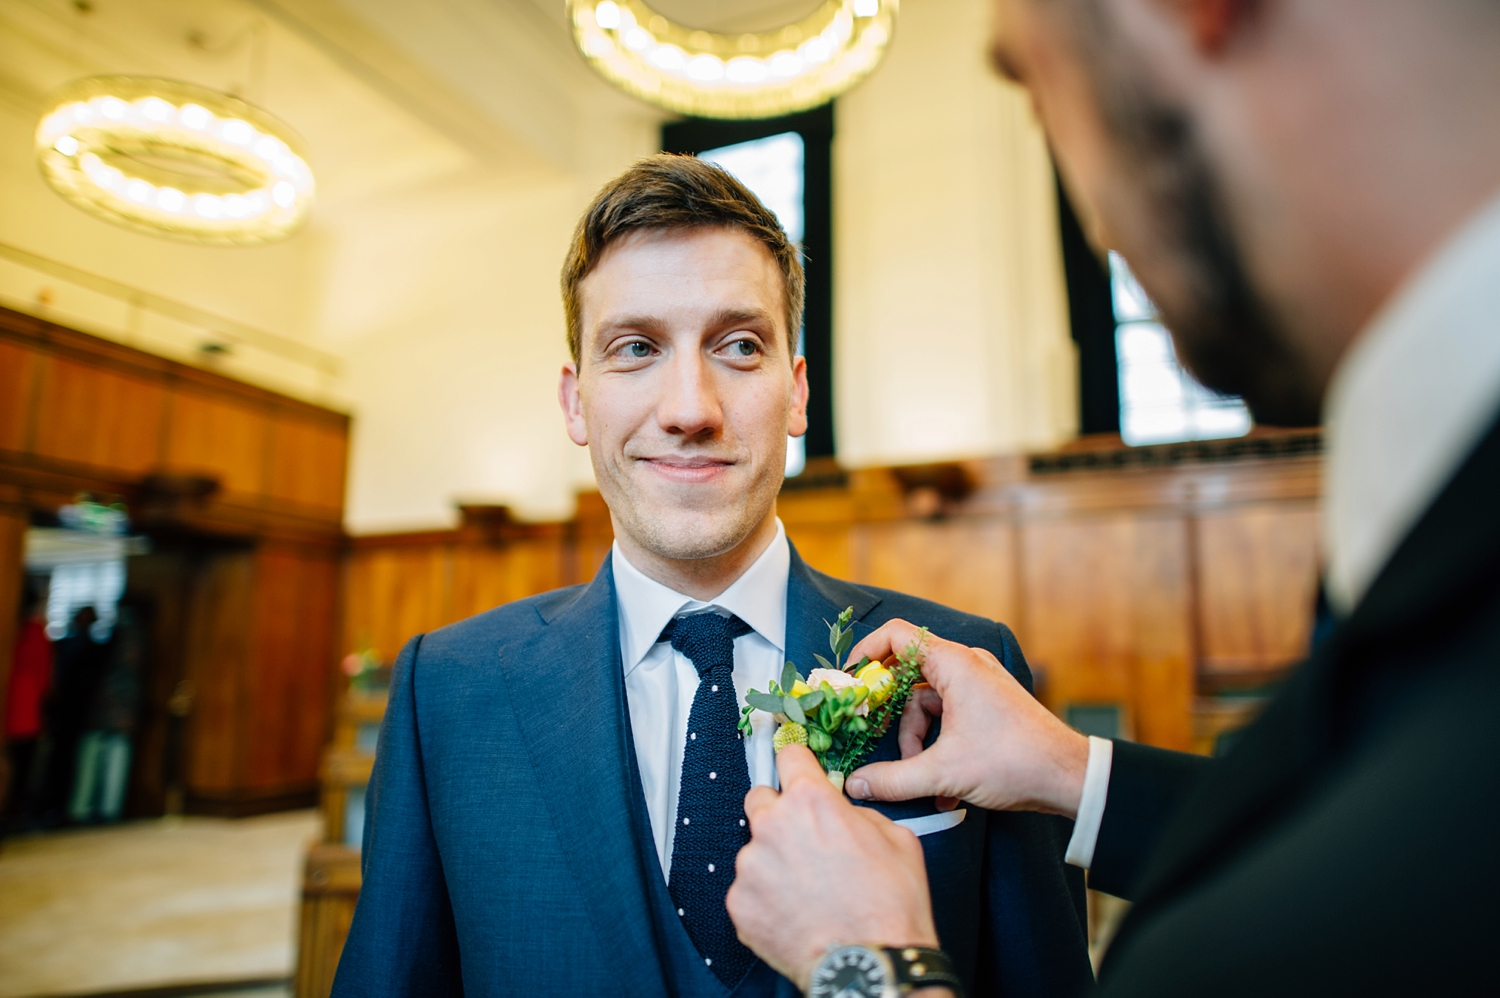 0033-lisa-devine-alternative-wedding-photography-london-hackney-dalston-london-photography-townhall-hotel.JPG